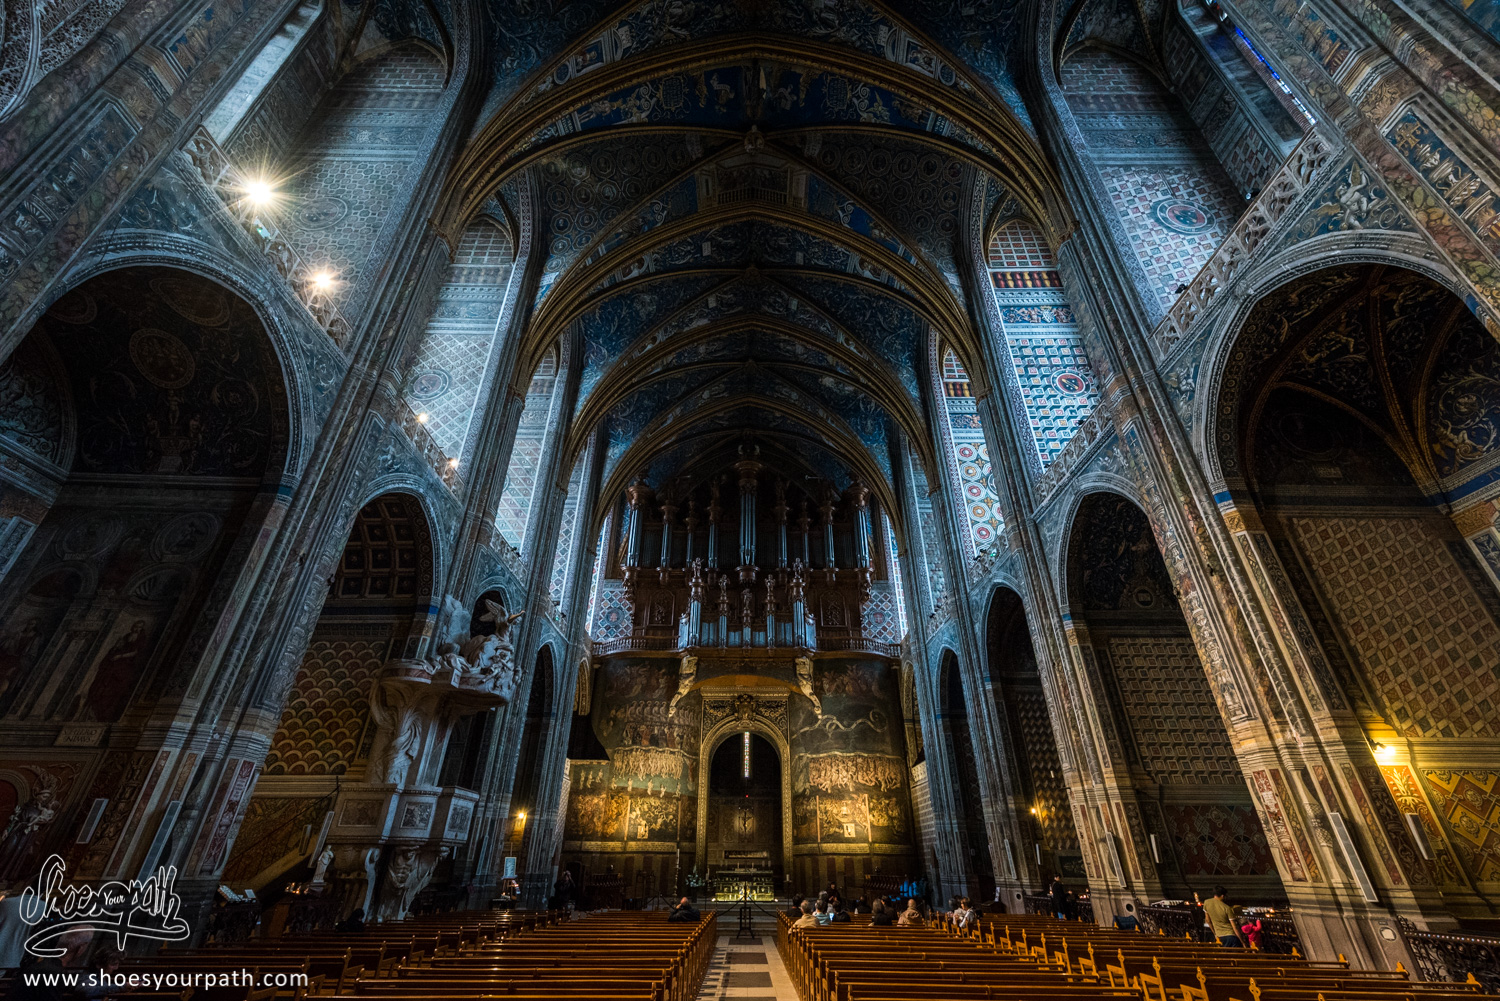 The wonderful Cathedral of Sainte-Cécile d'Albi